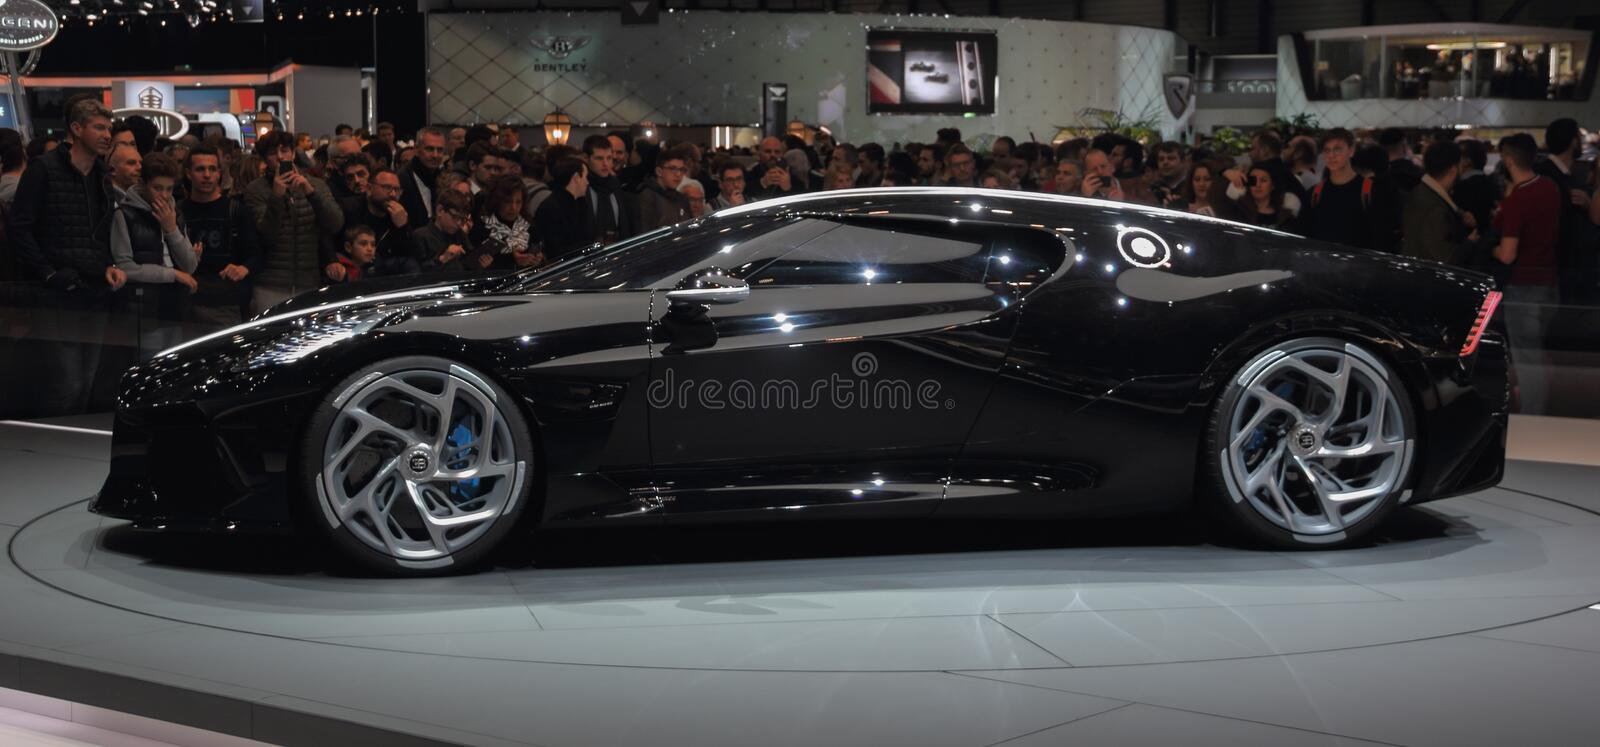 Switzerland; Geneva; March 10, 2019; Bugatti - La Voiture Noire, left profile view; The 89th International Motor Show in Geneva. From 7th to 17th of March, 2019 stock images